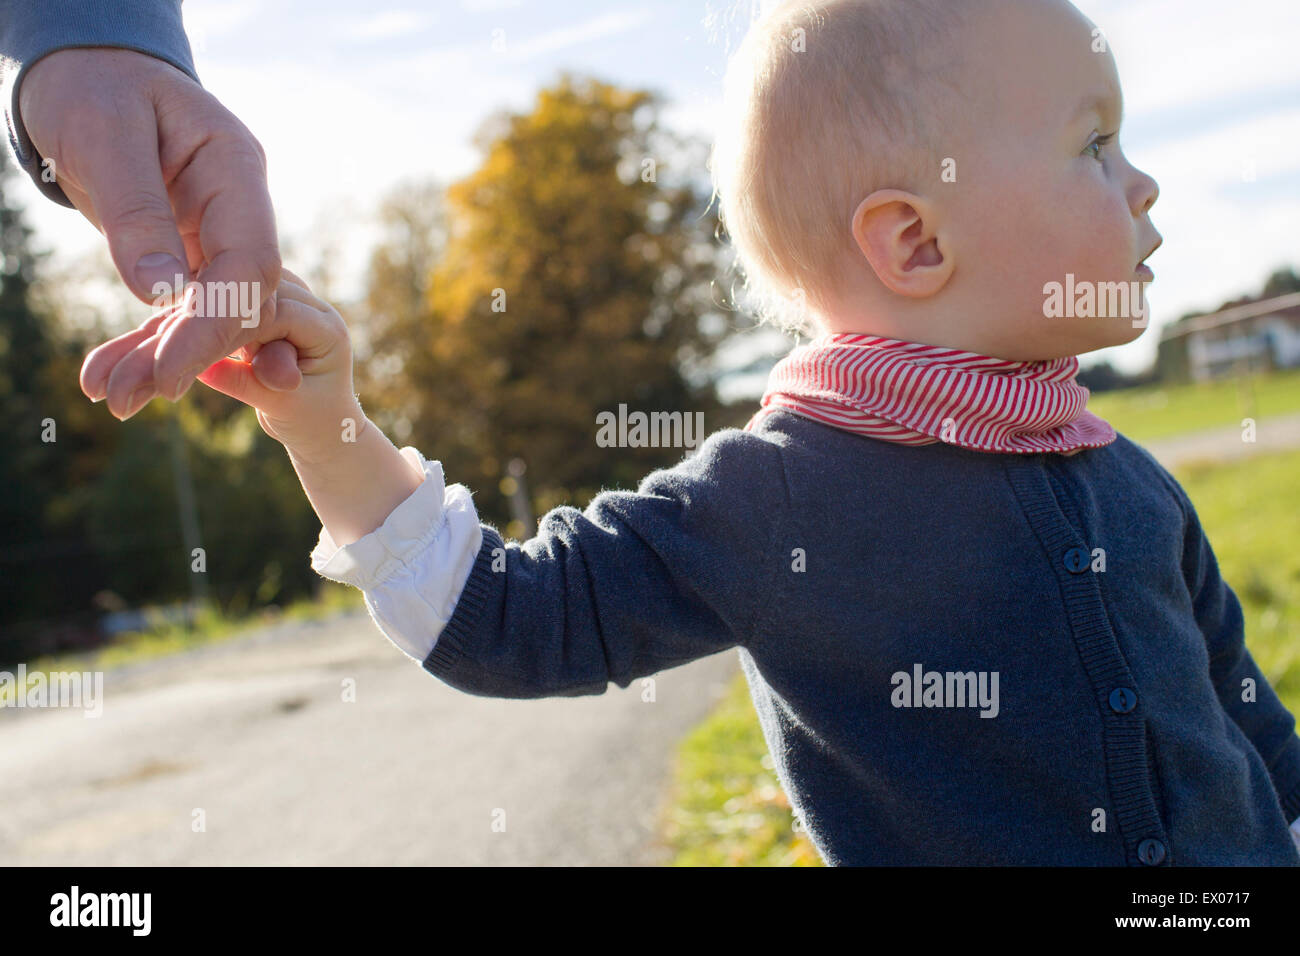 Baby girl toddling on rural road holding fathers hand - Stock Image